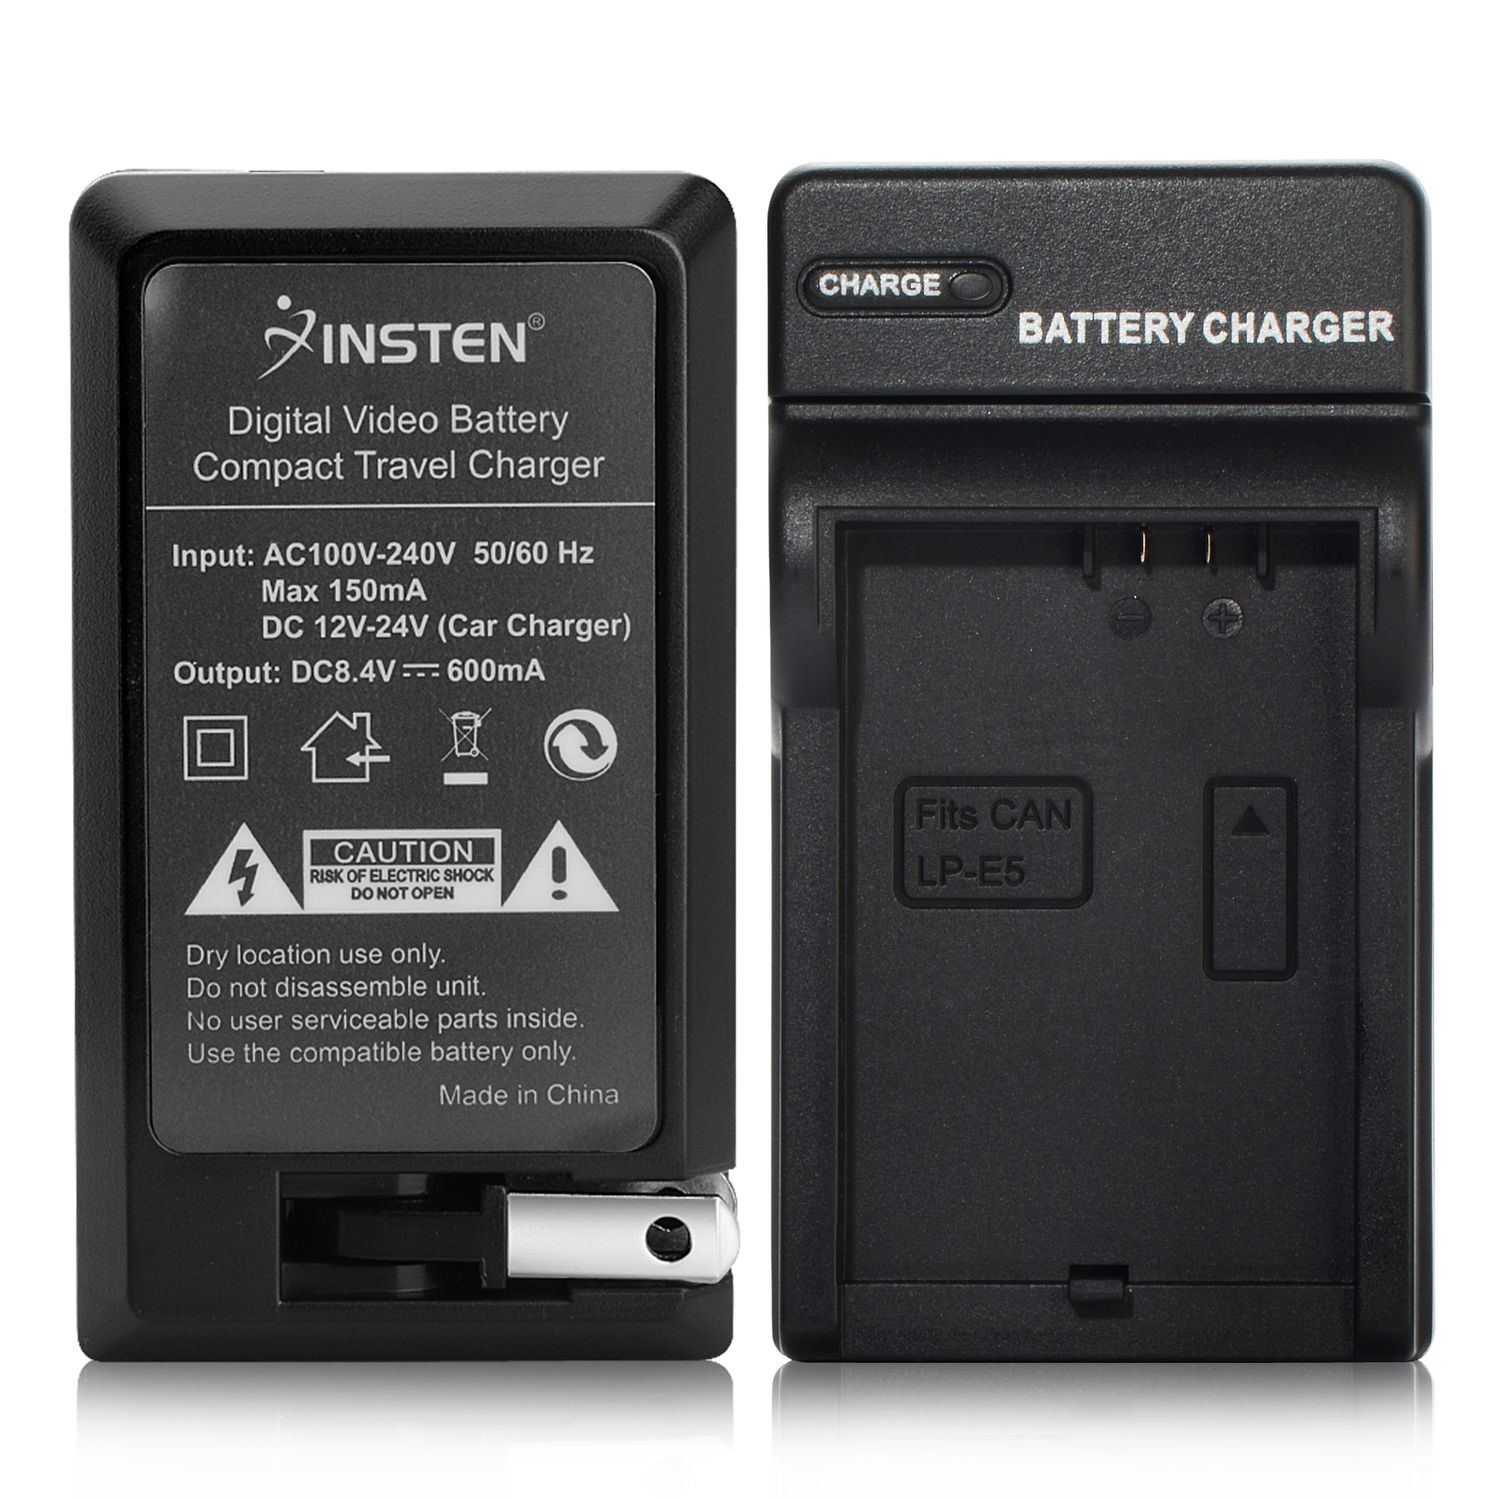 Insten Compact Battery Charger Set For Canon LP-E5